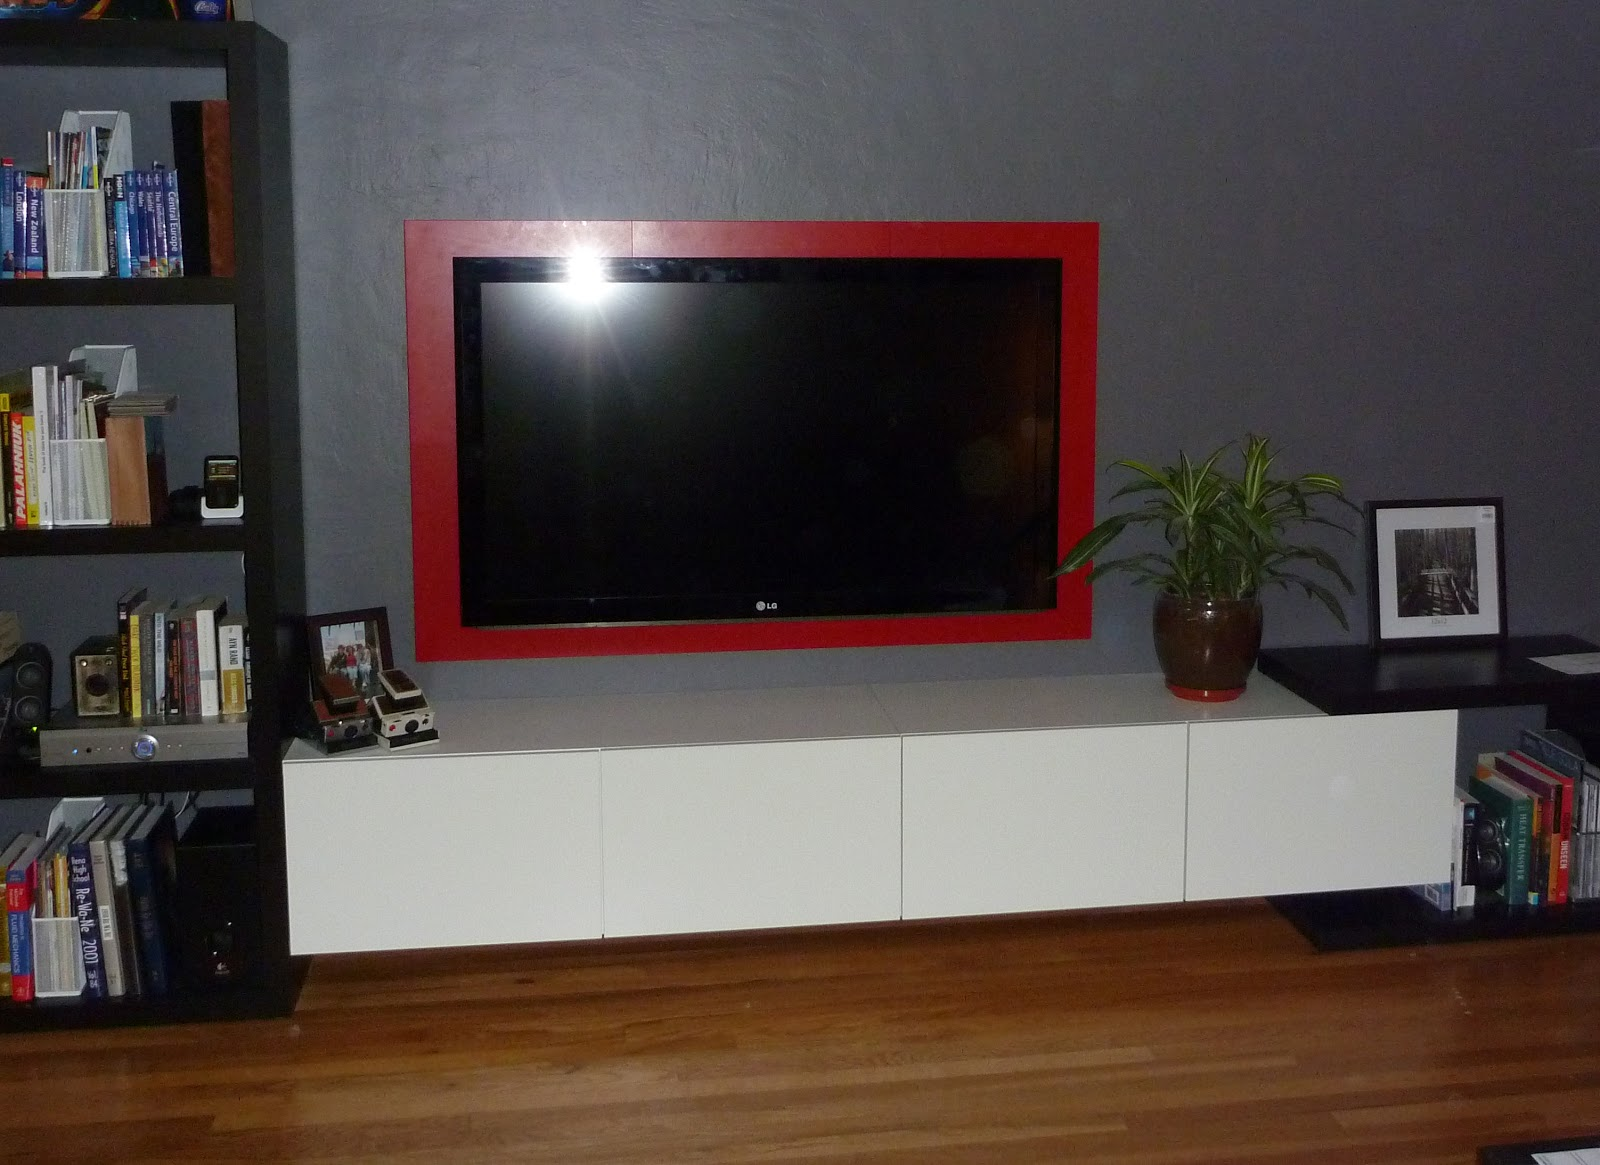 My stupid house framing your hdtv my stupid house jeuxipadfo Image collections